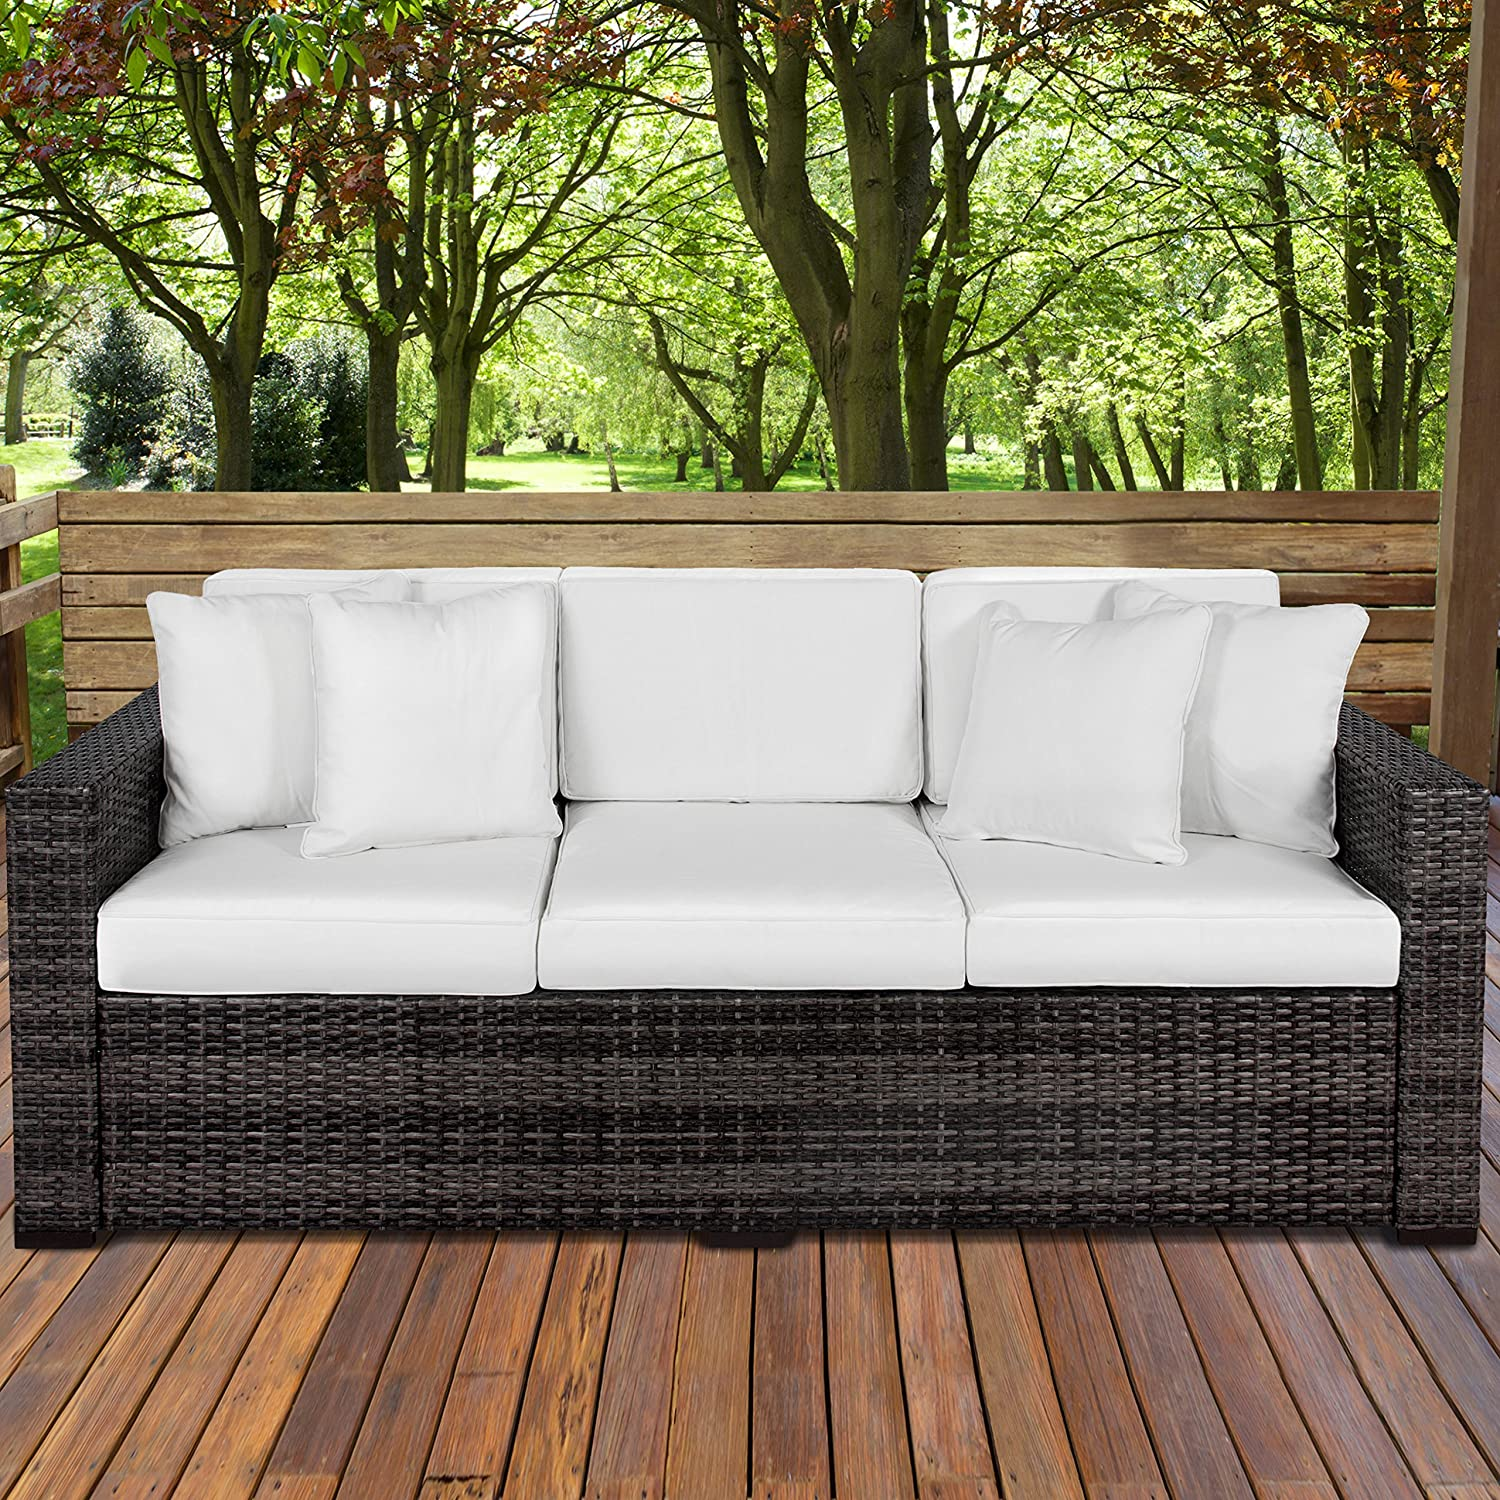 Amazon Best Choice Products Outdoor Wicker Patio Furniture